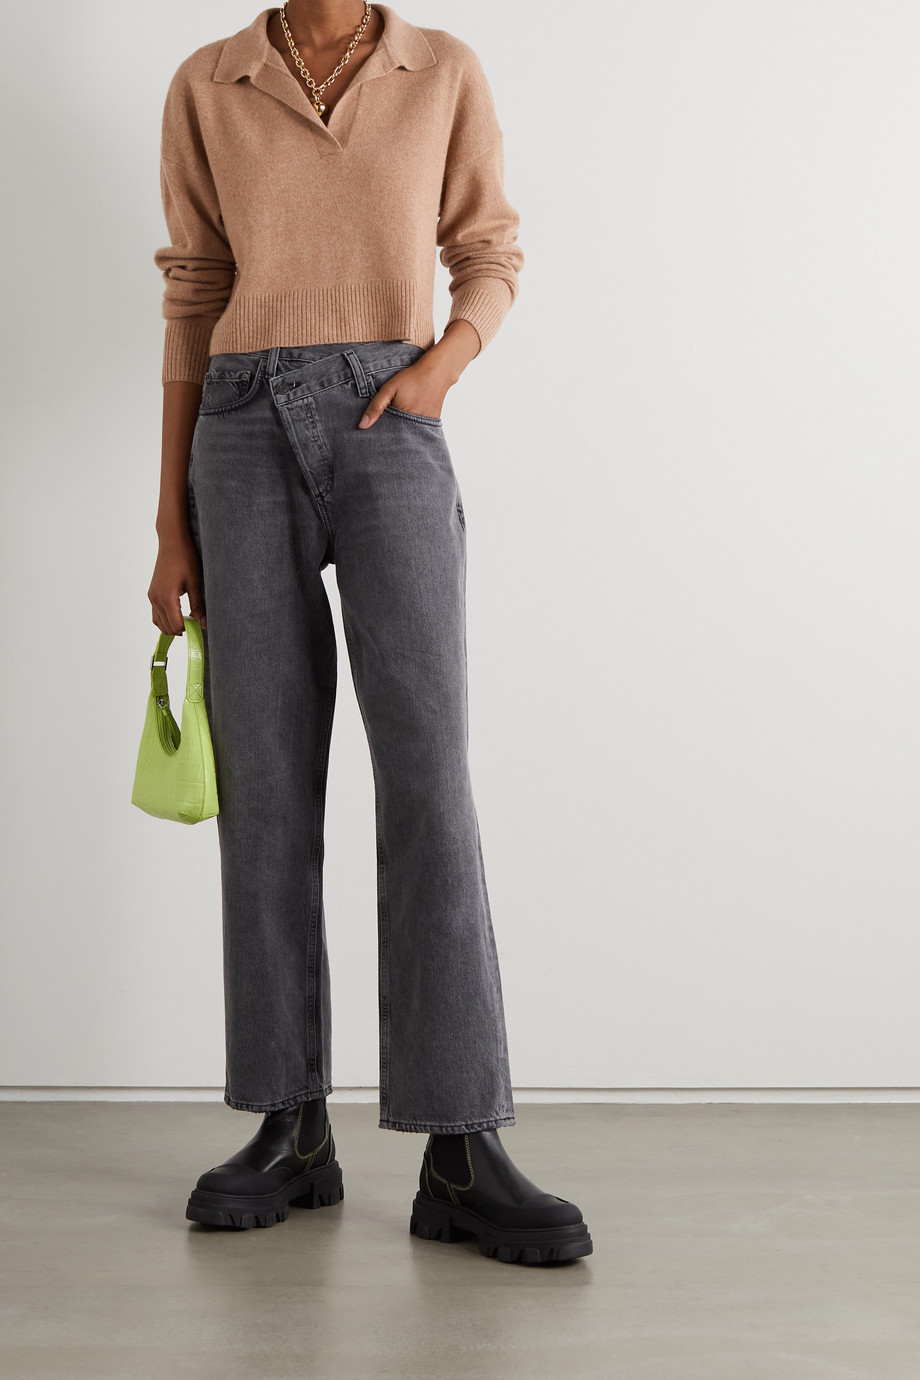 Reformation Cropped cashmere sweater